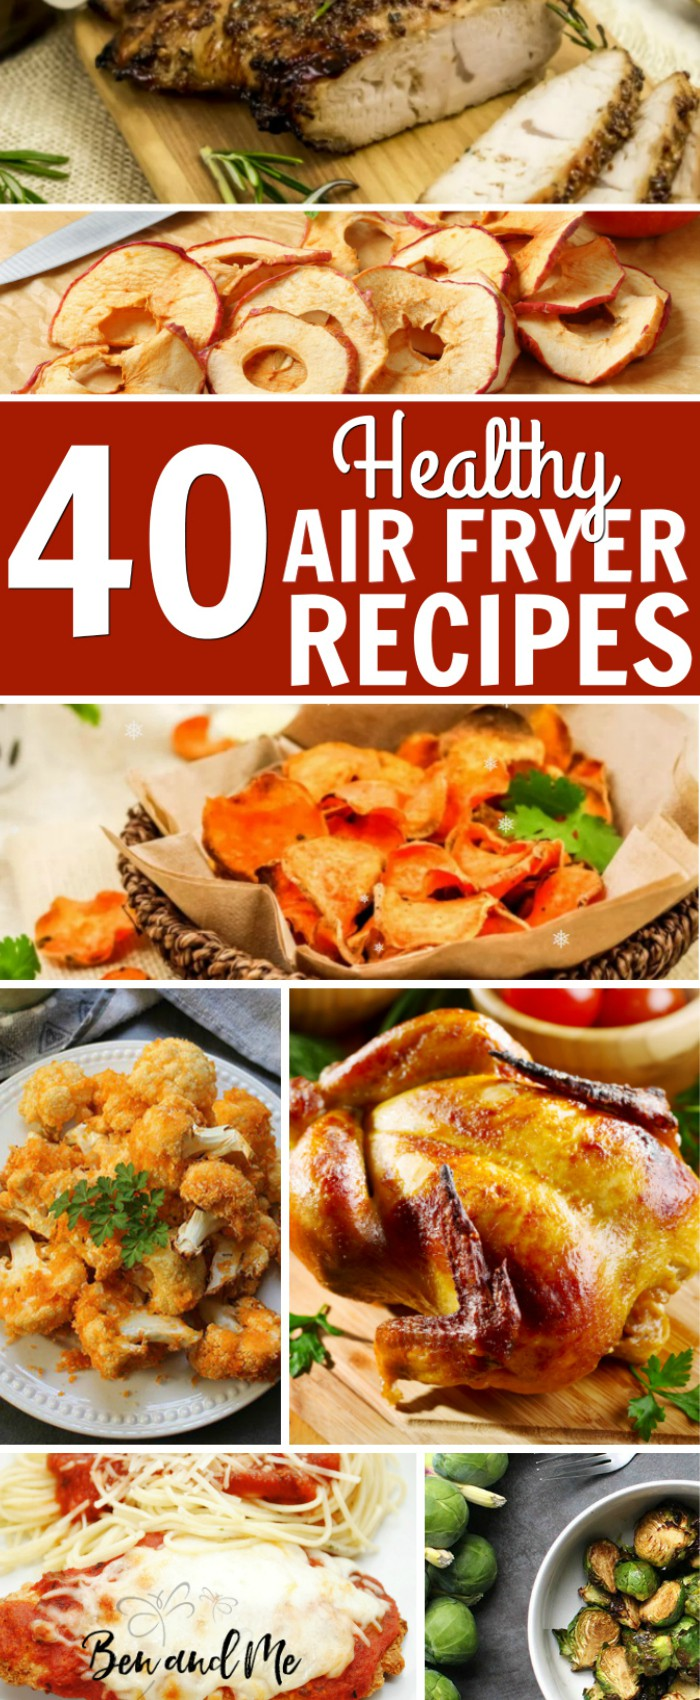 I've compiled 40 Healthy Recipes for the Air Fryer here all ready for you to get started. The #airfryer saves time, is less messy than other cooking methods, and fries with little or no oil! #recipes #airfryer #airfryerrecipes #healthyrecipes #airfryermeals